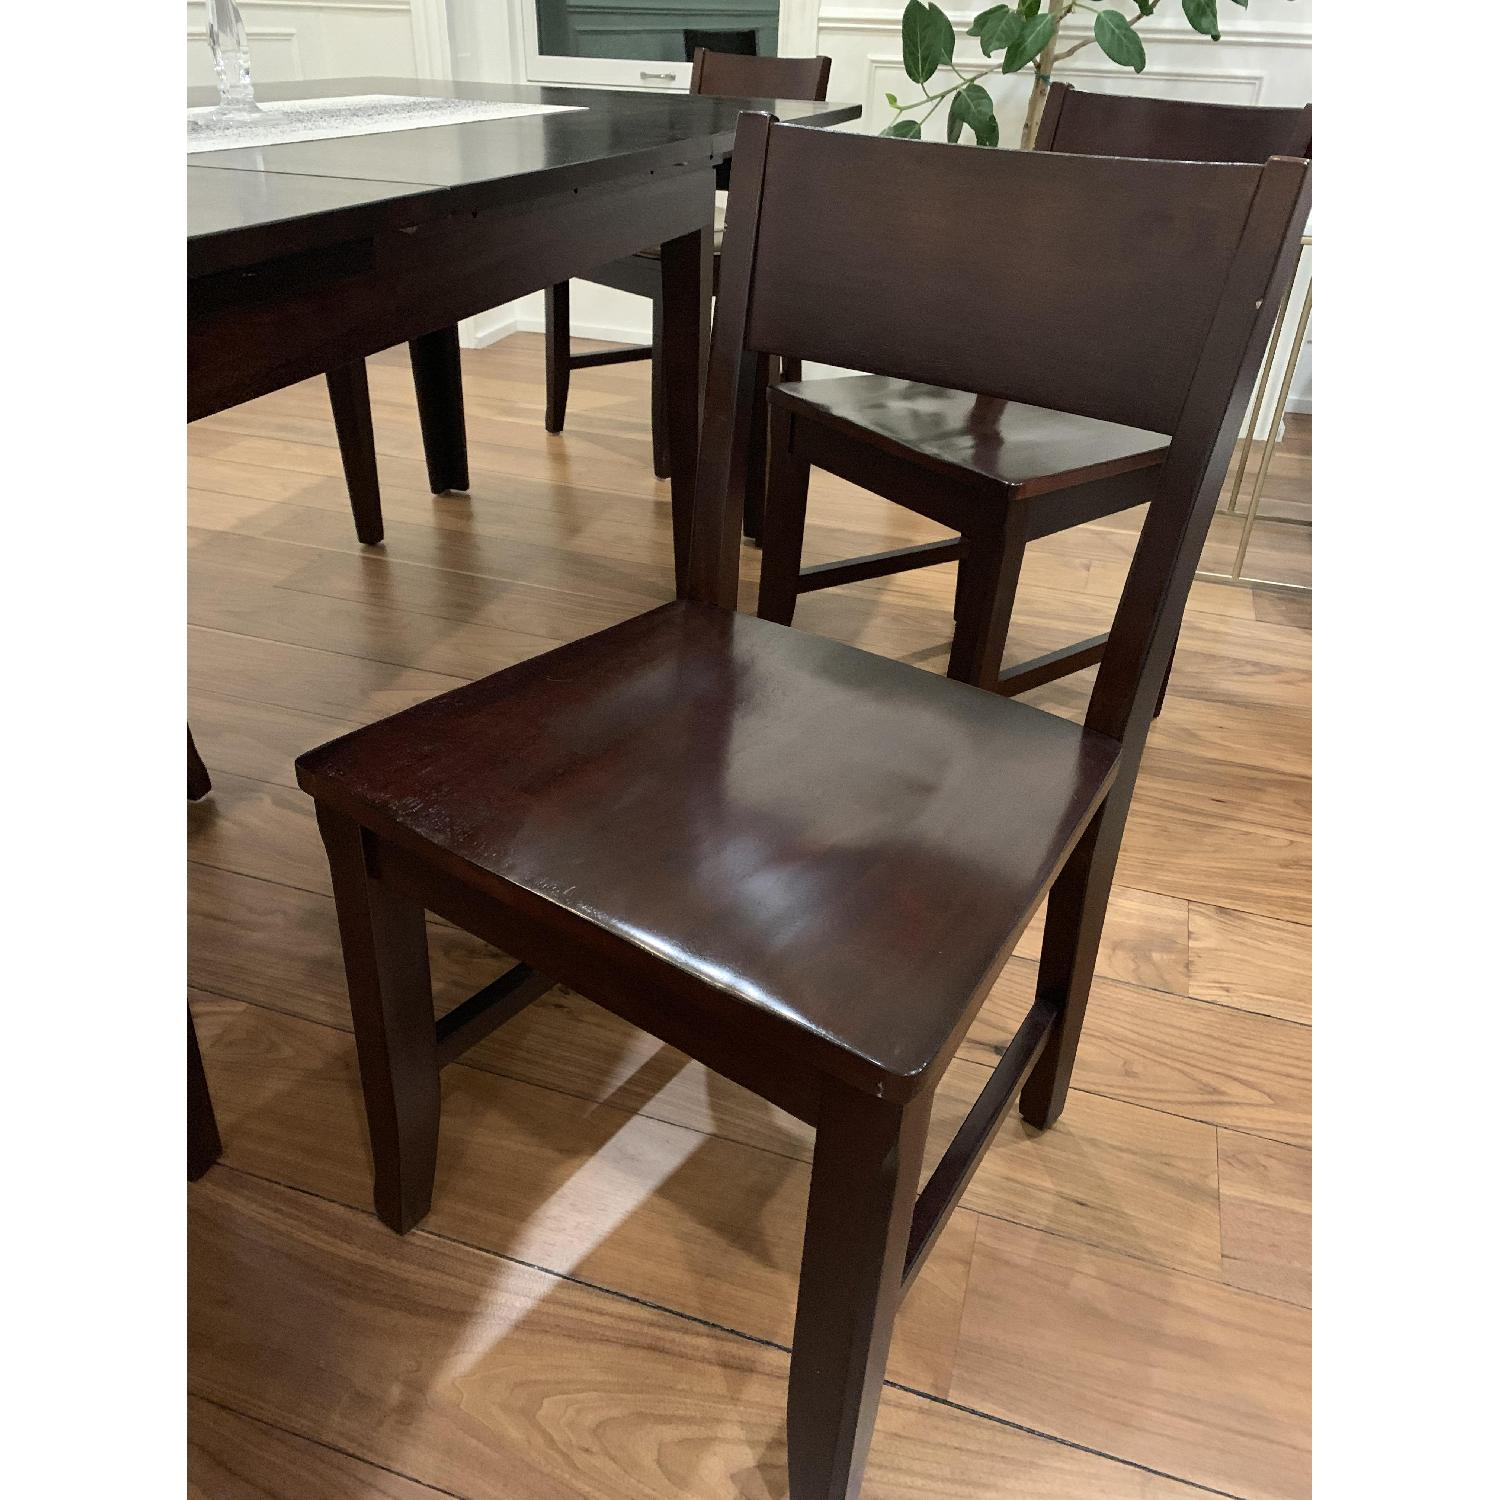 Montreal Espresso Wood Chairs - image-10